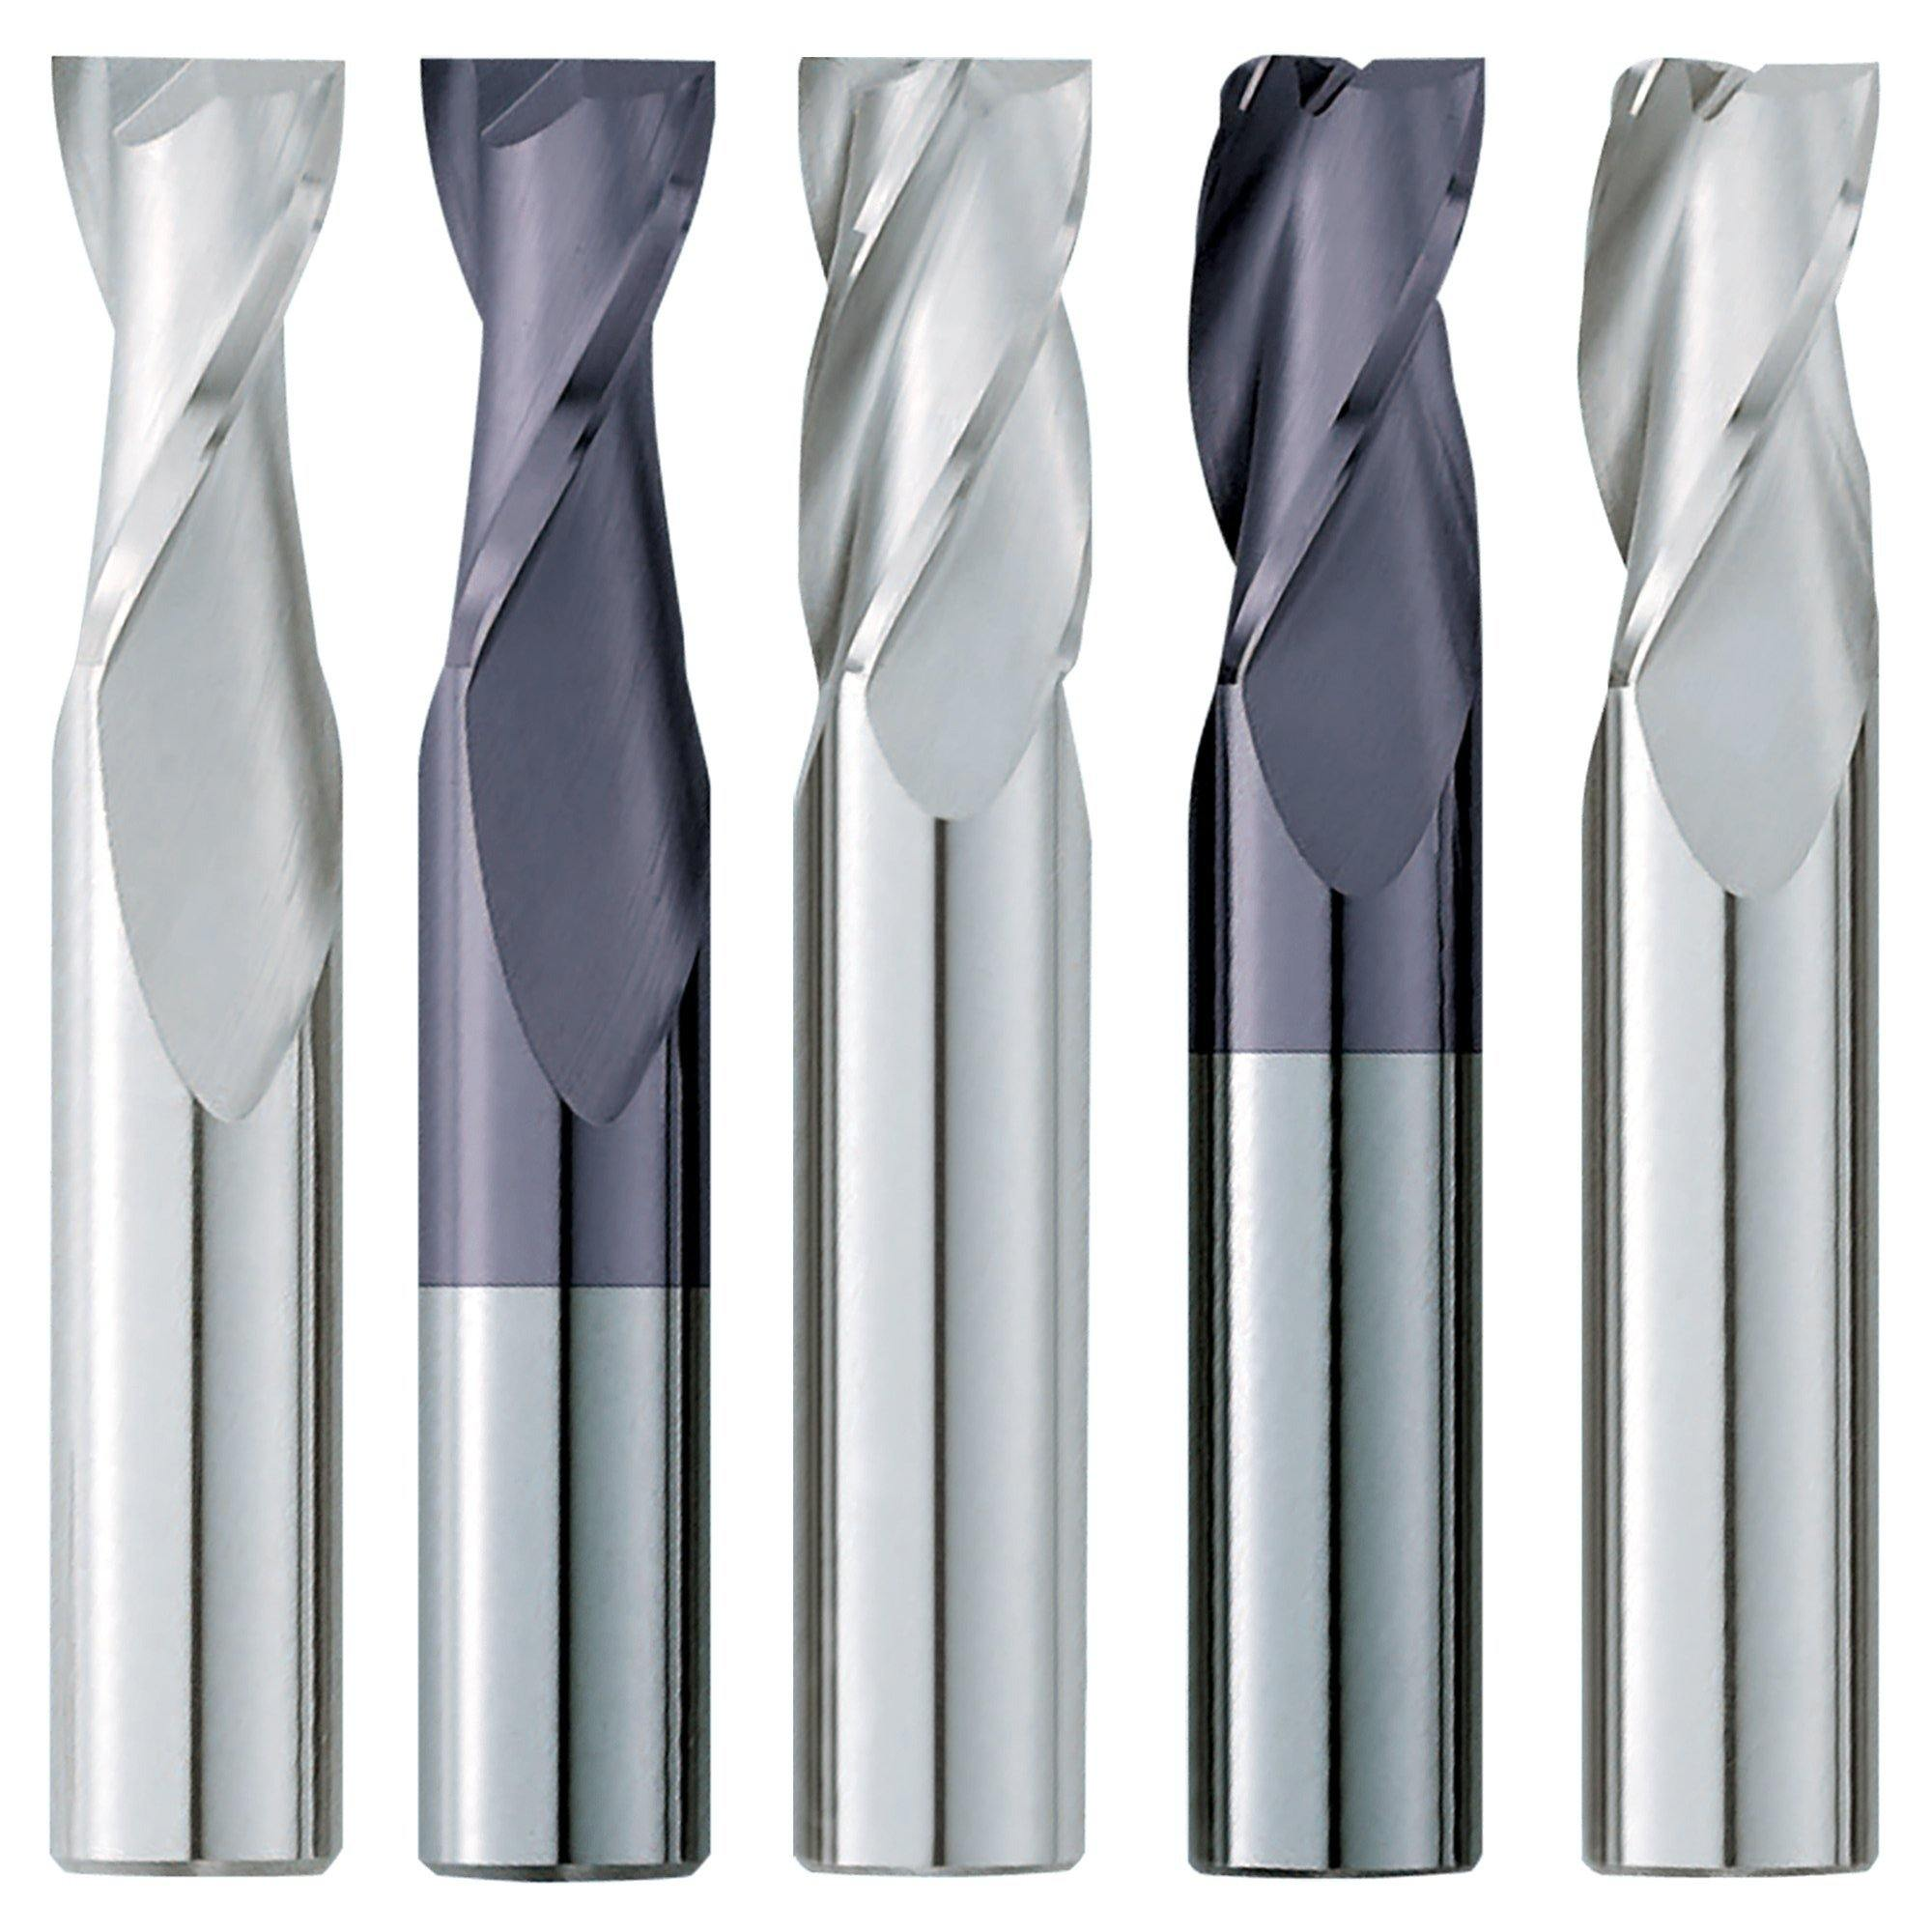 "(5 Pack) 3/16"" x 5/8"" x 2"" Standard Square Carbide End Mill - End Mill Store"